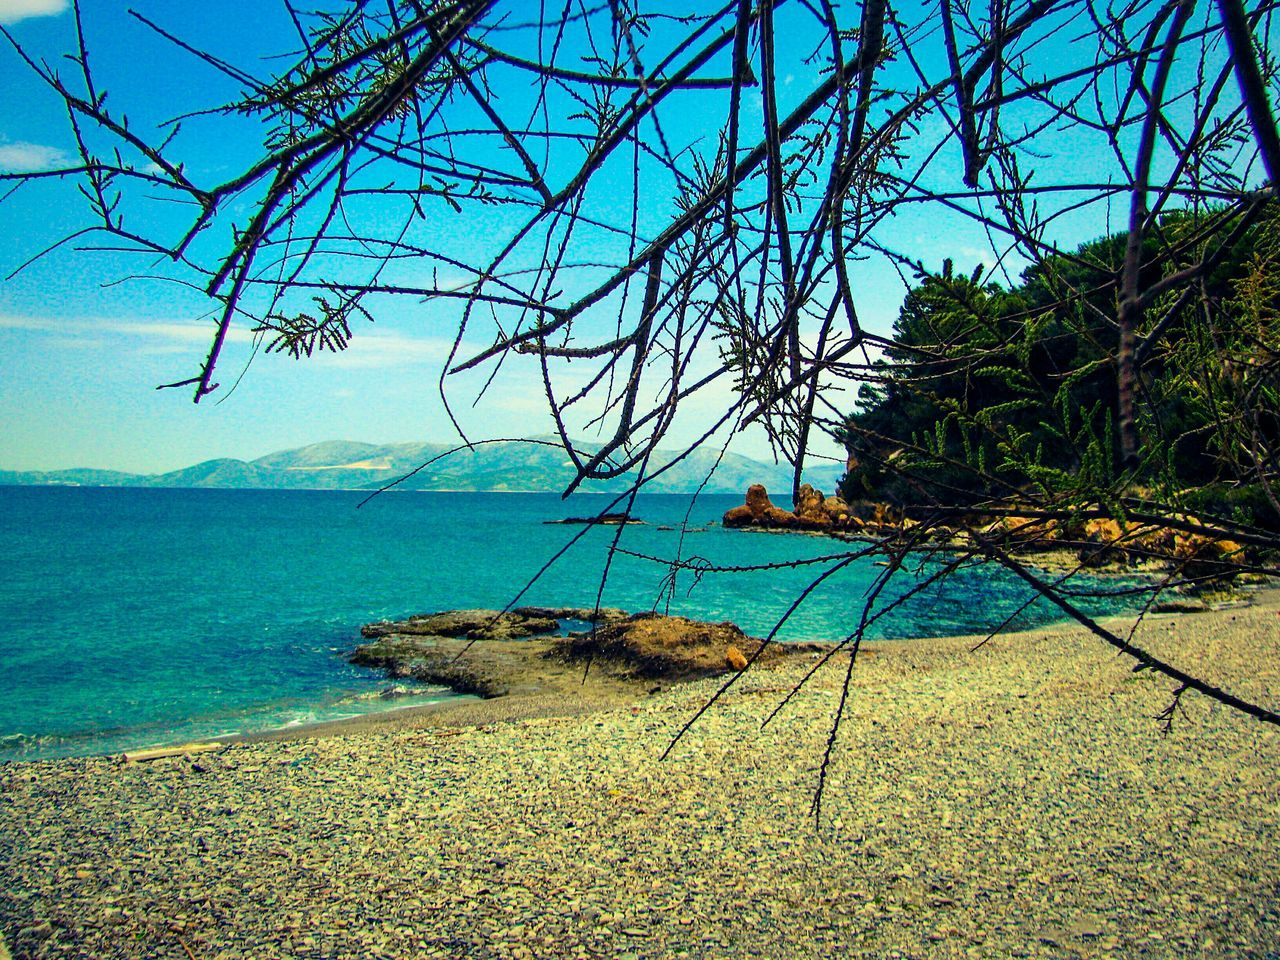 Nature Beauty In Nature Tranquility Scenics Sea Tranquil Scene Blue Seascape Beach Beach Photography Pebble Beach Pebbles The Great Outdoors - 2017 EyeEm Awards Greece Landscapes Landscape Backgrounds Shades Of Blue South Evoikos Gulf Tree Branches